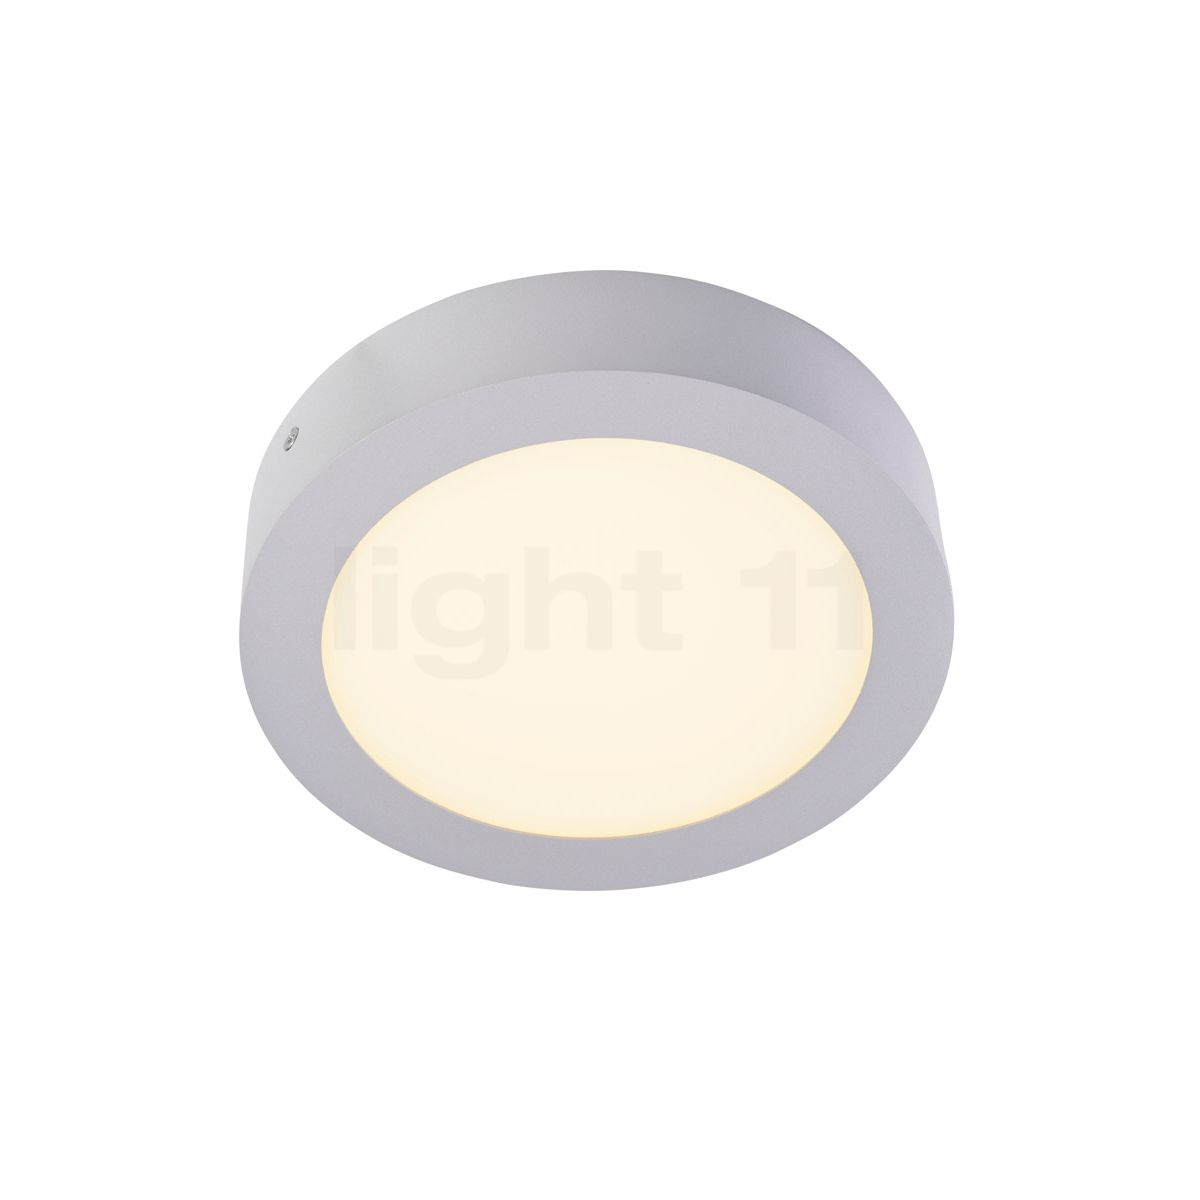 plafonnier led en applique